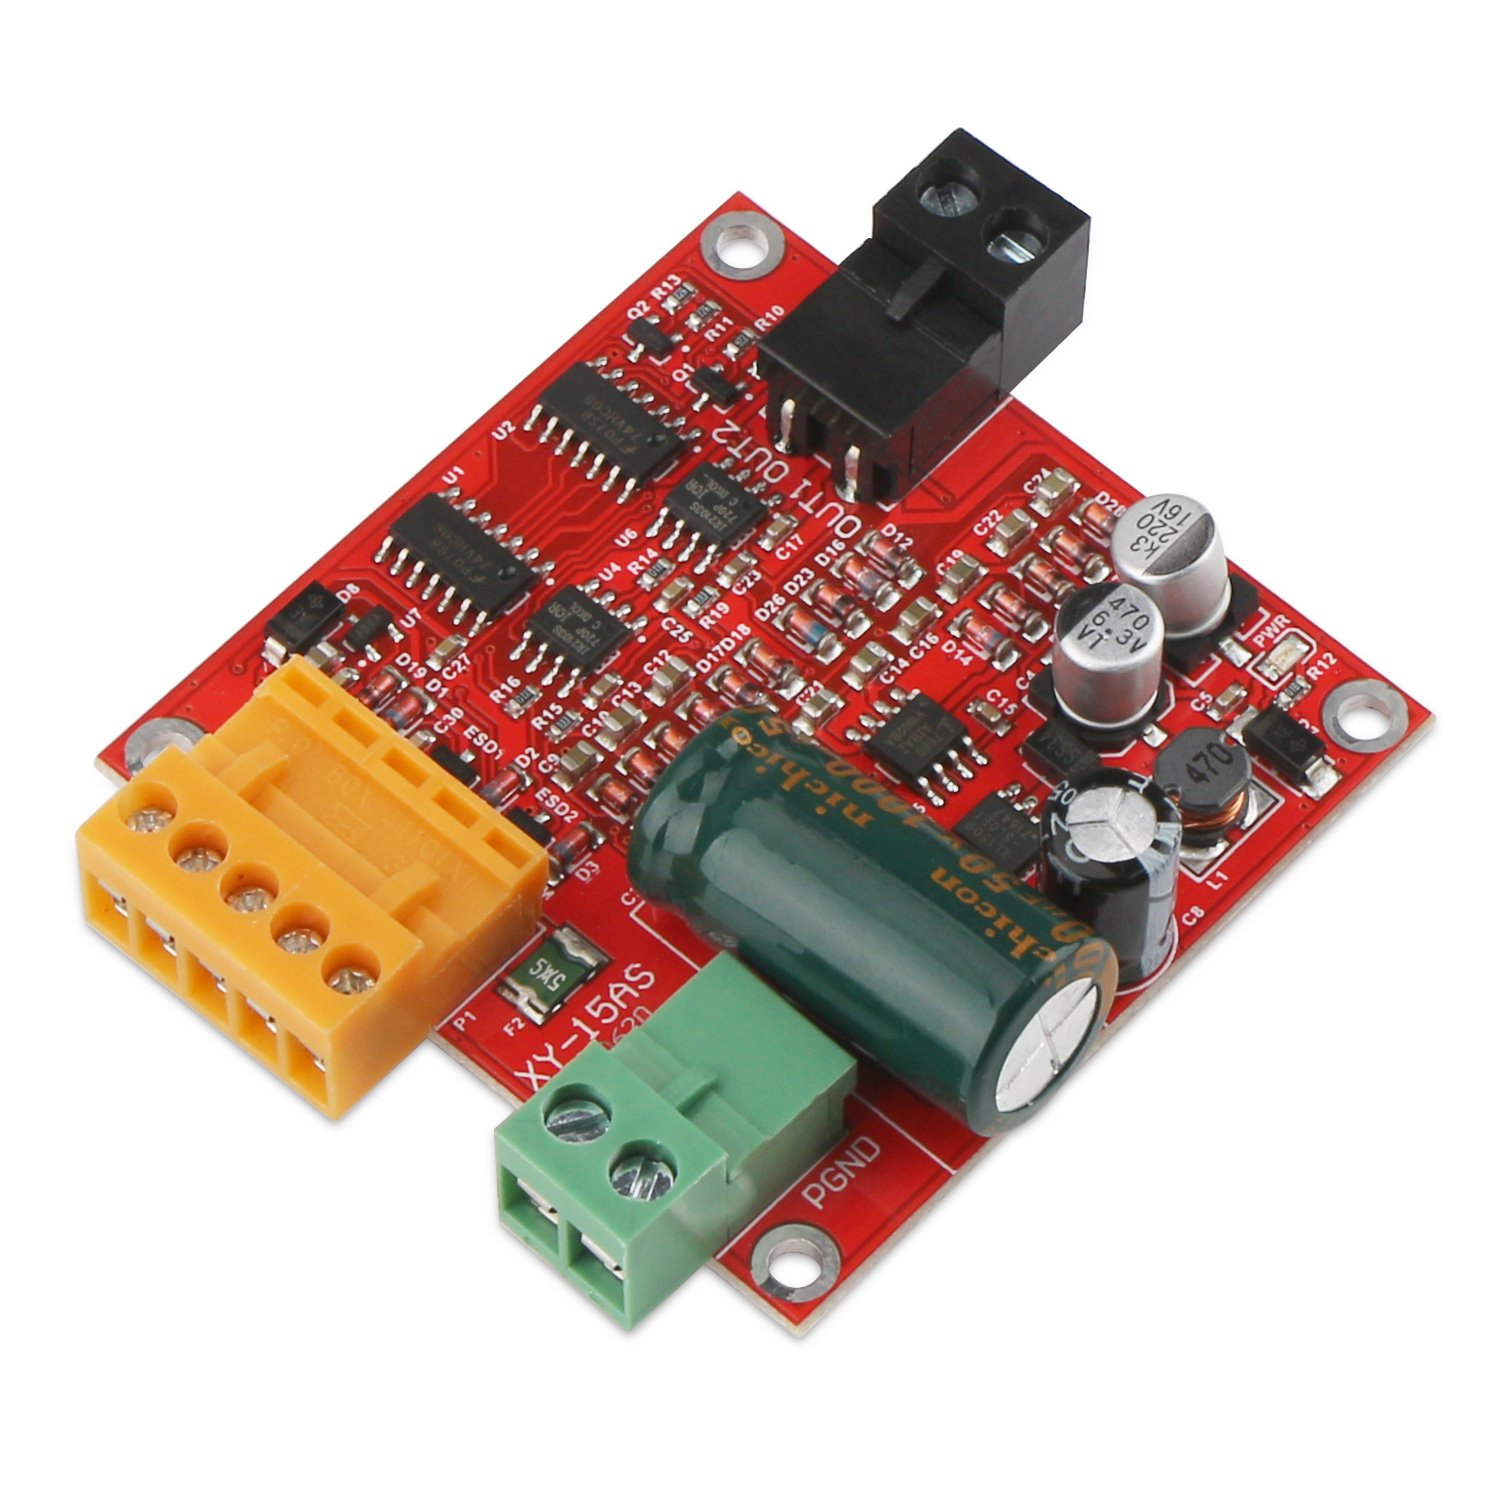 DROK Motor Speed Controller DC 12V/24V/36V Motor Speed Control Module 12A High Power Industrial PWM Electric Motor Drive Regulator Board by DROK